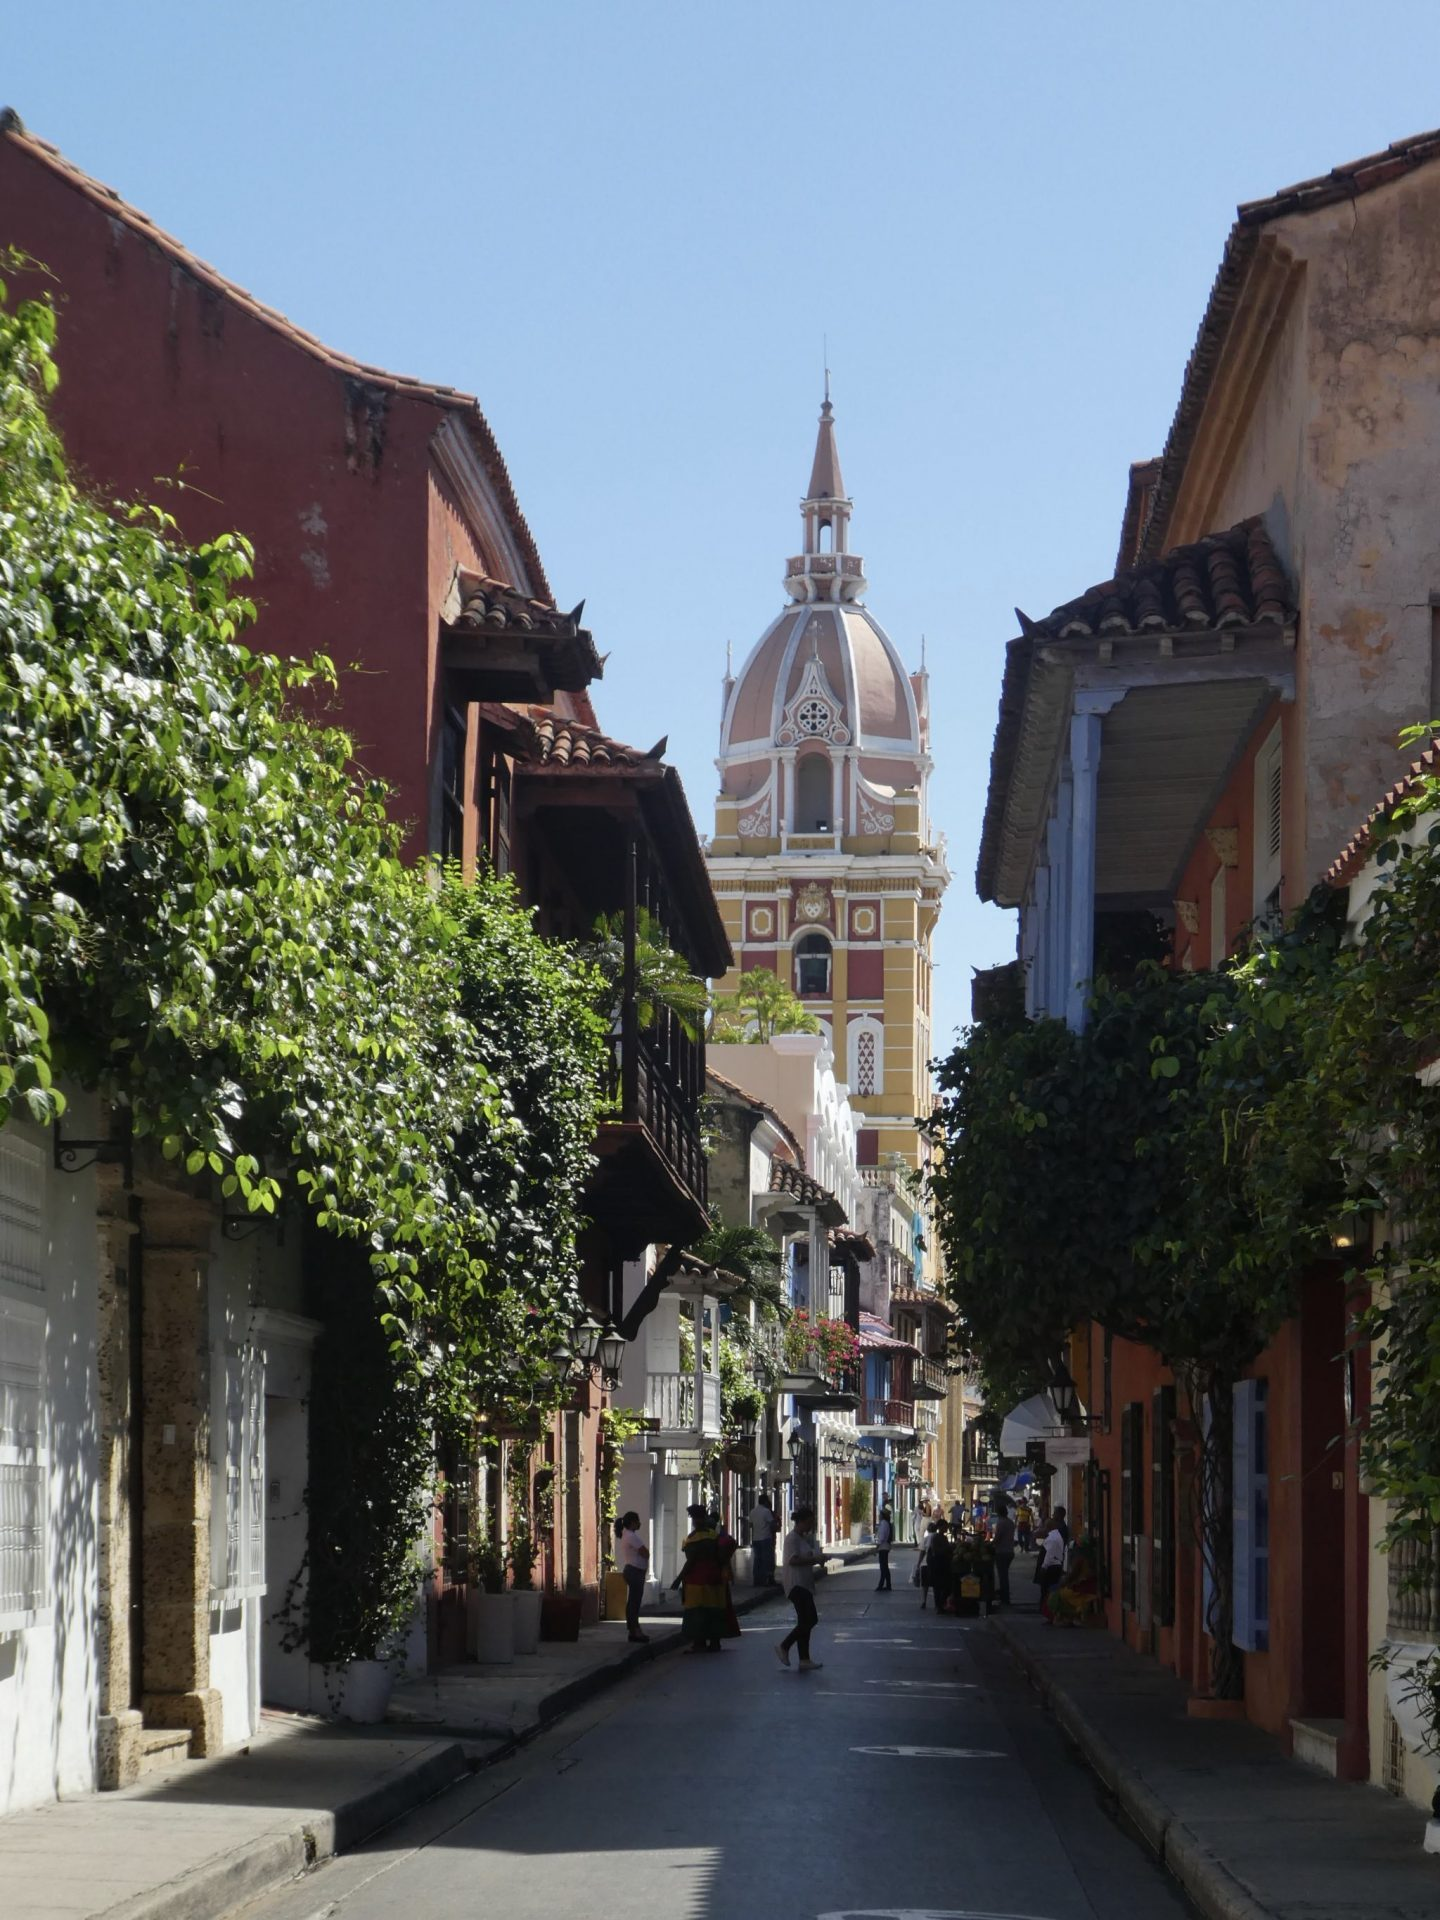 Cartagena (8 to 11 December 2019)